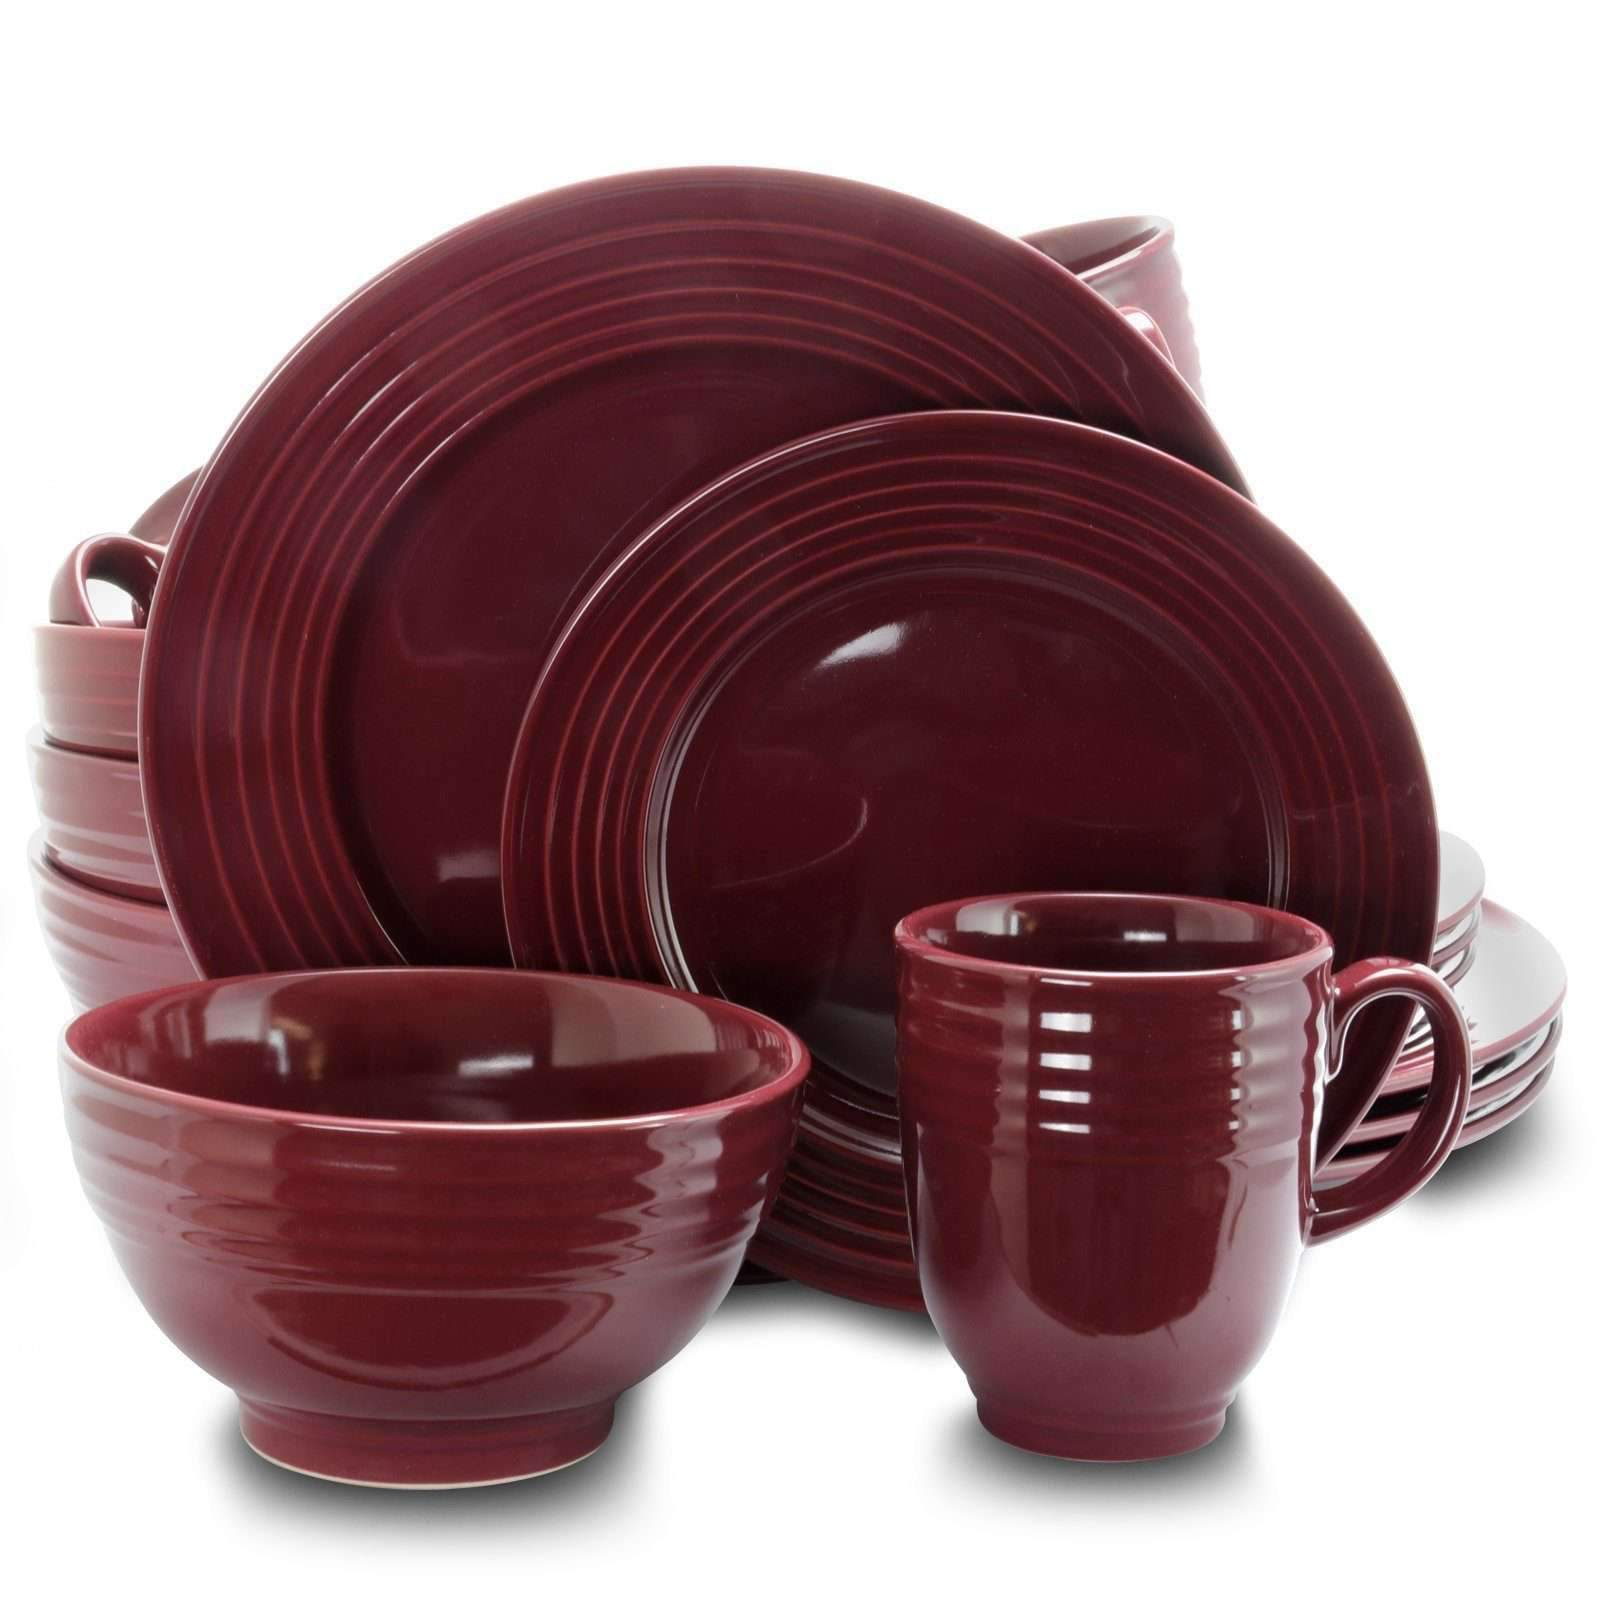 Gibson Tableware Gibson Stanza 16 pc Stoneware Dinnerware Set- Burgundy